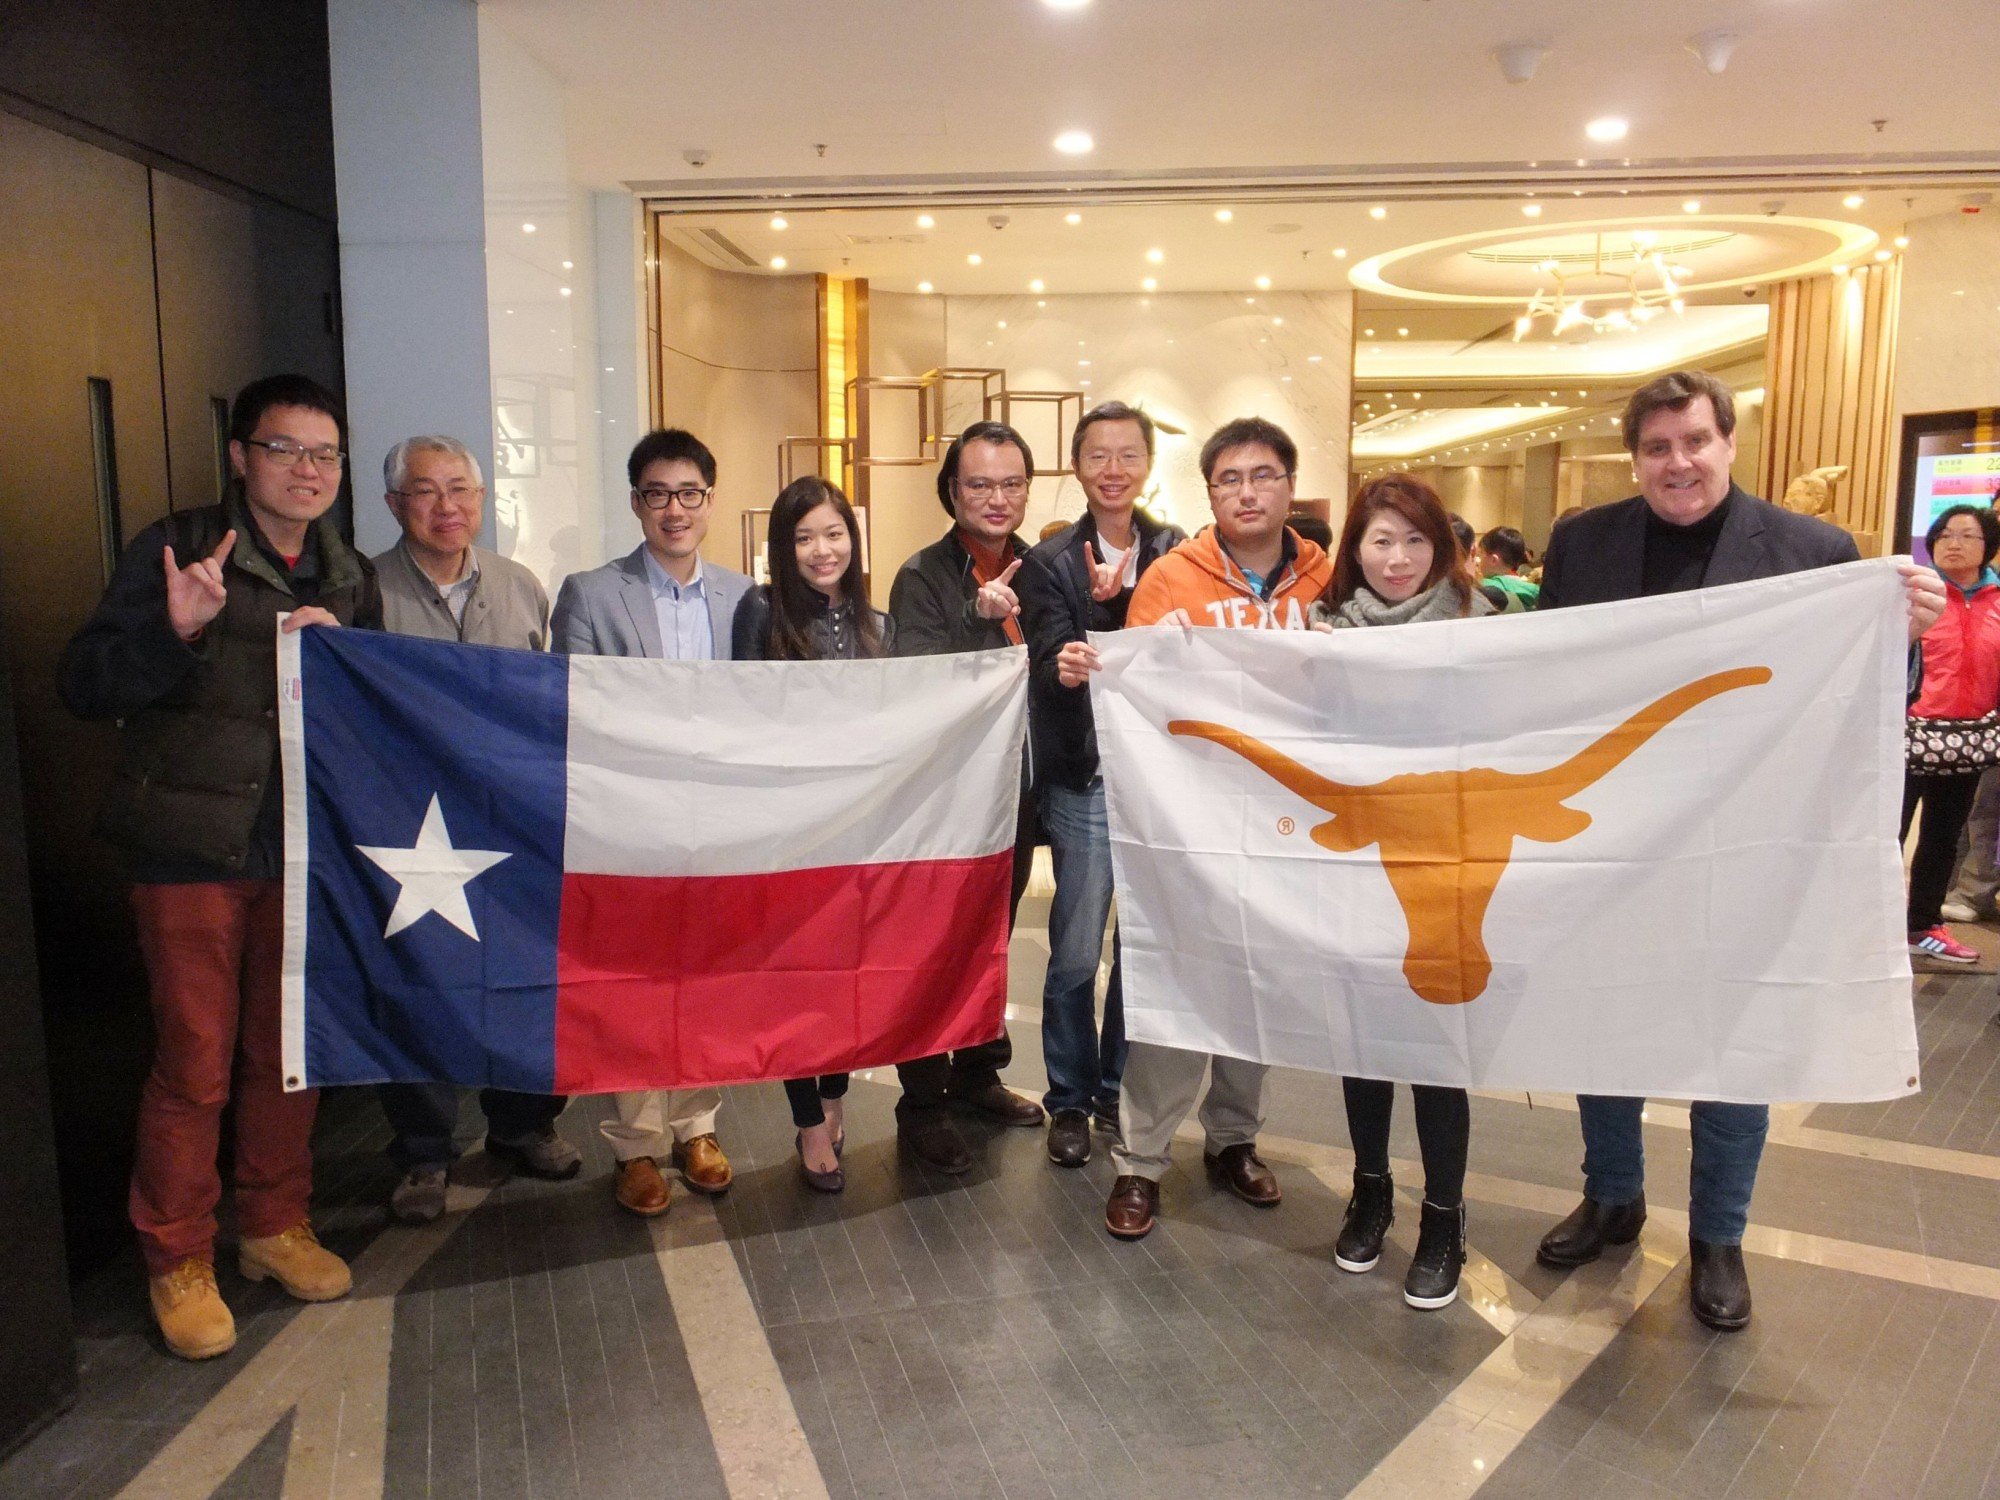 Annual General Meeting and Texas Independence Day Dinner